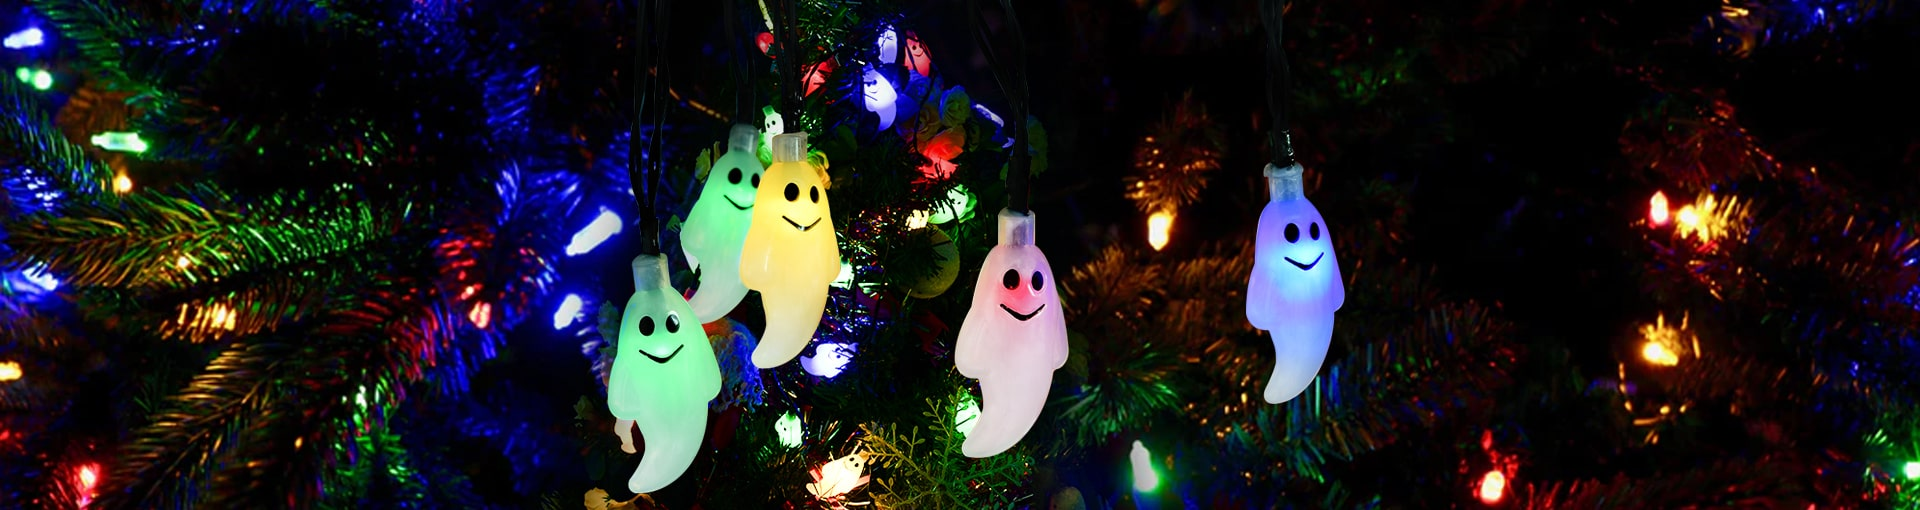 Halloween String Lights Banner